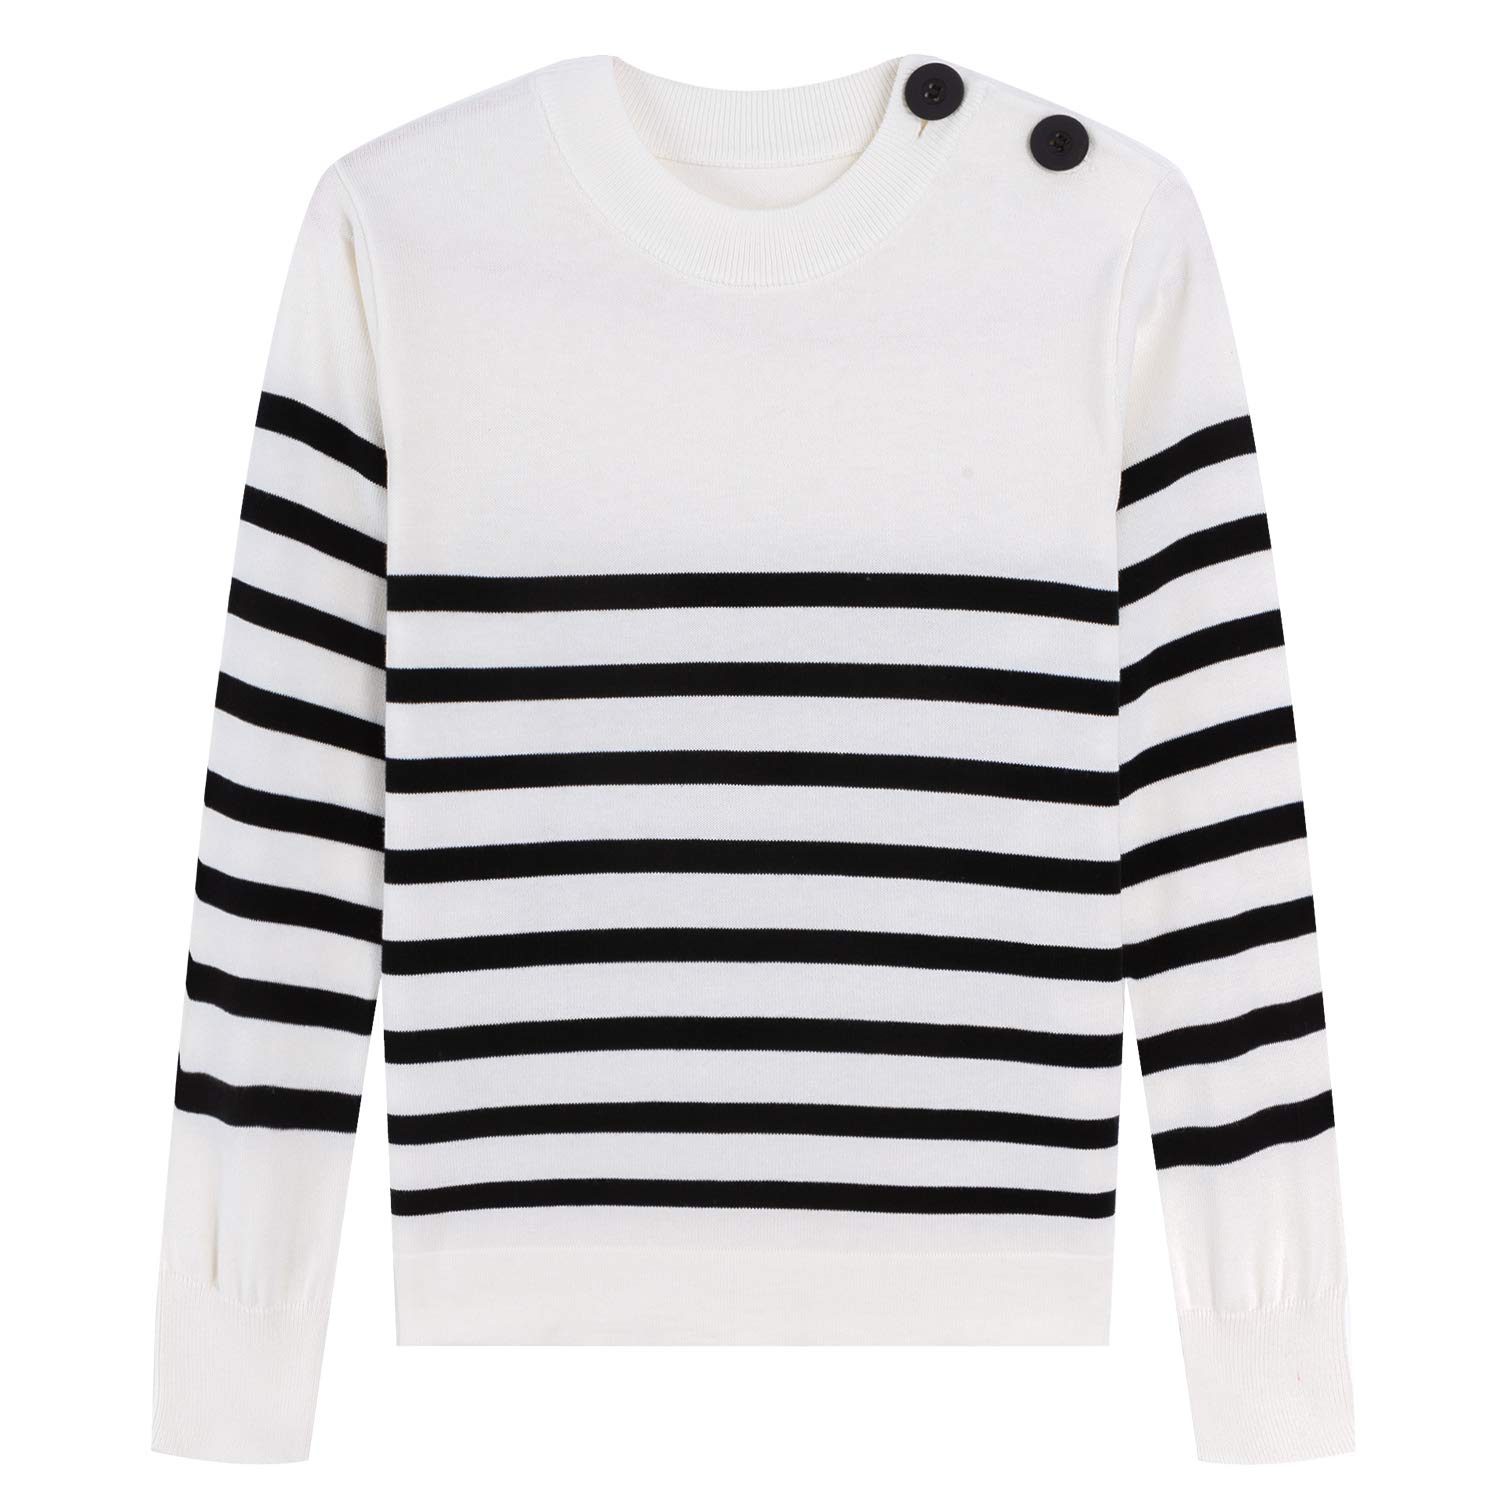 Adory Sweety Sweater for Kids Baby Boy Toddler Soft /&Cute Crew Neck Stripe Long Sleeve Pullover